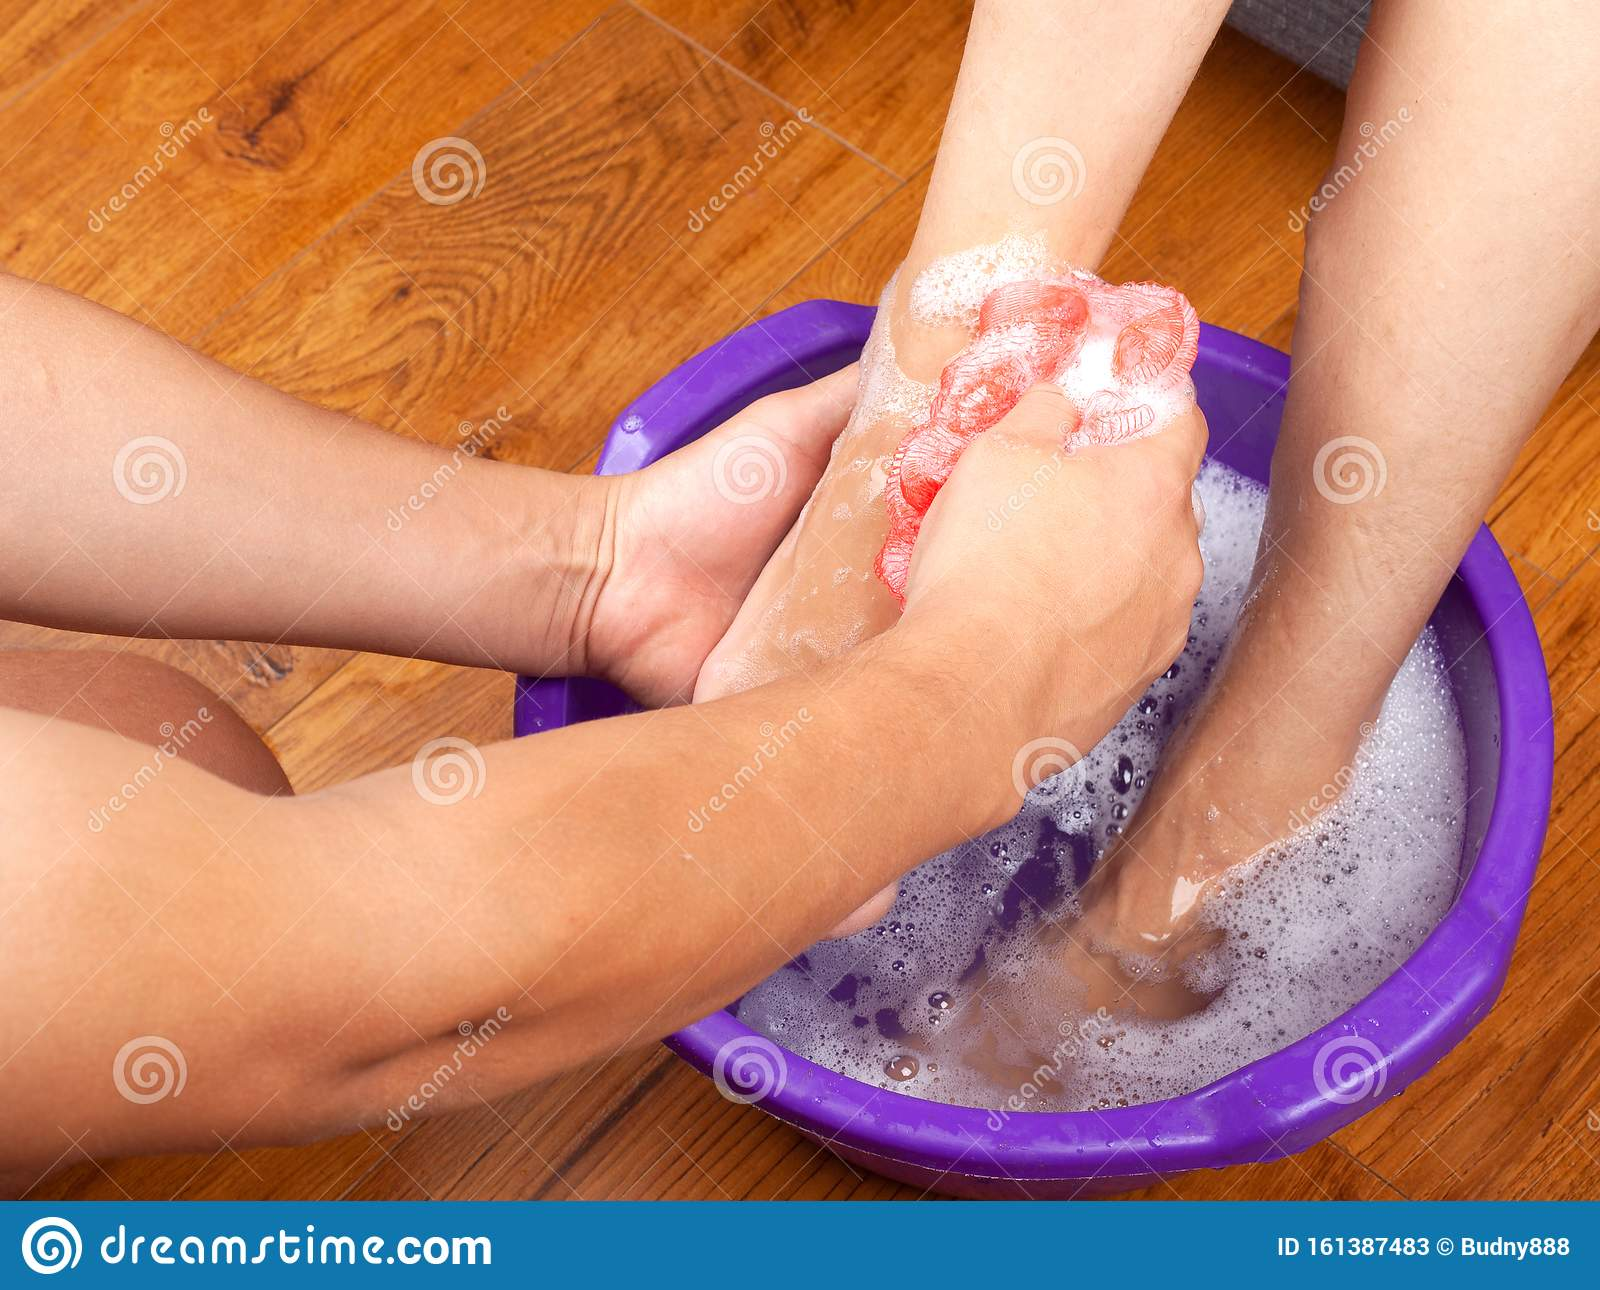 The Guy In The Spa Salon Made The Girl A Warm Foot Bath And Washes Her Feet With Natural And Fragrant Soap Aromatherapy For Legs Stock Image Image Of Pedicure Lifestyle 161387483